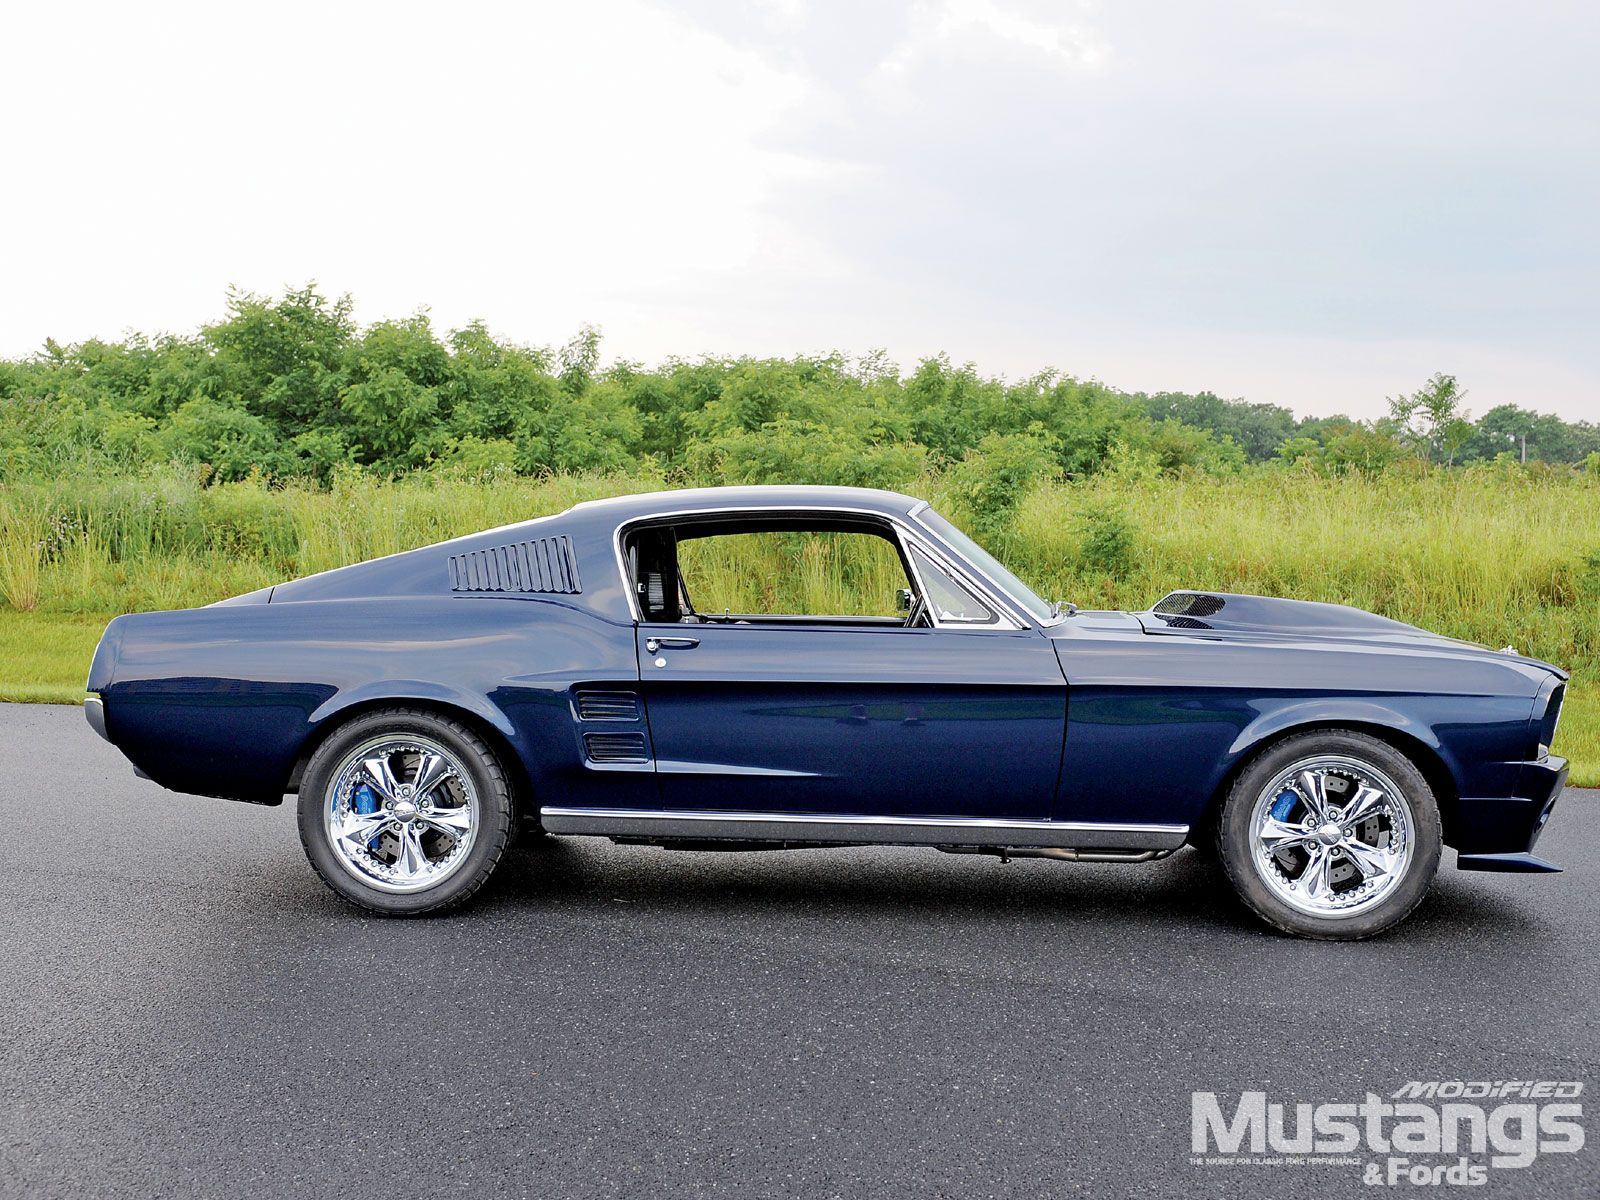 1967 Ford Mustang Shelby Gt500 Eleanor Tribute Ford Mustang